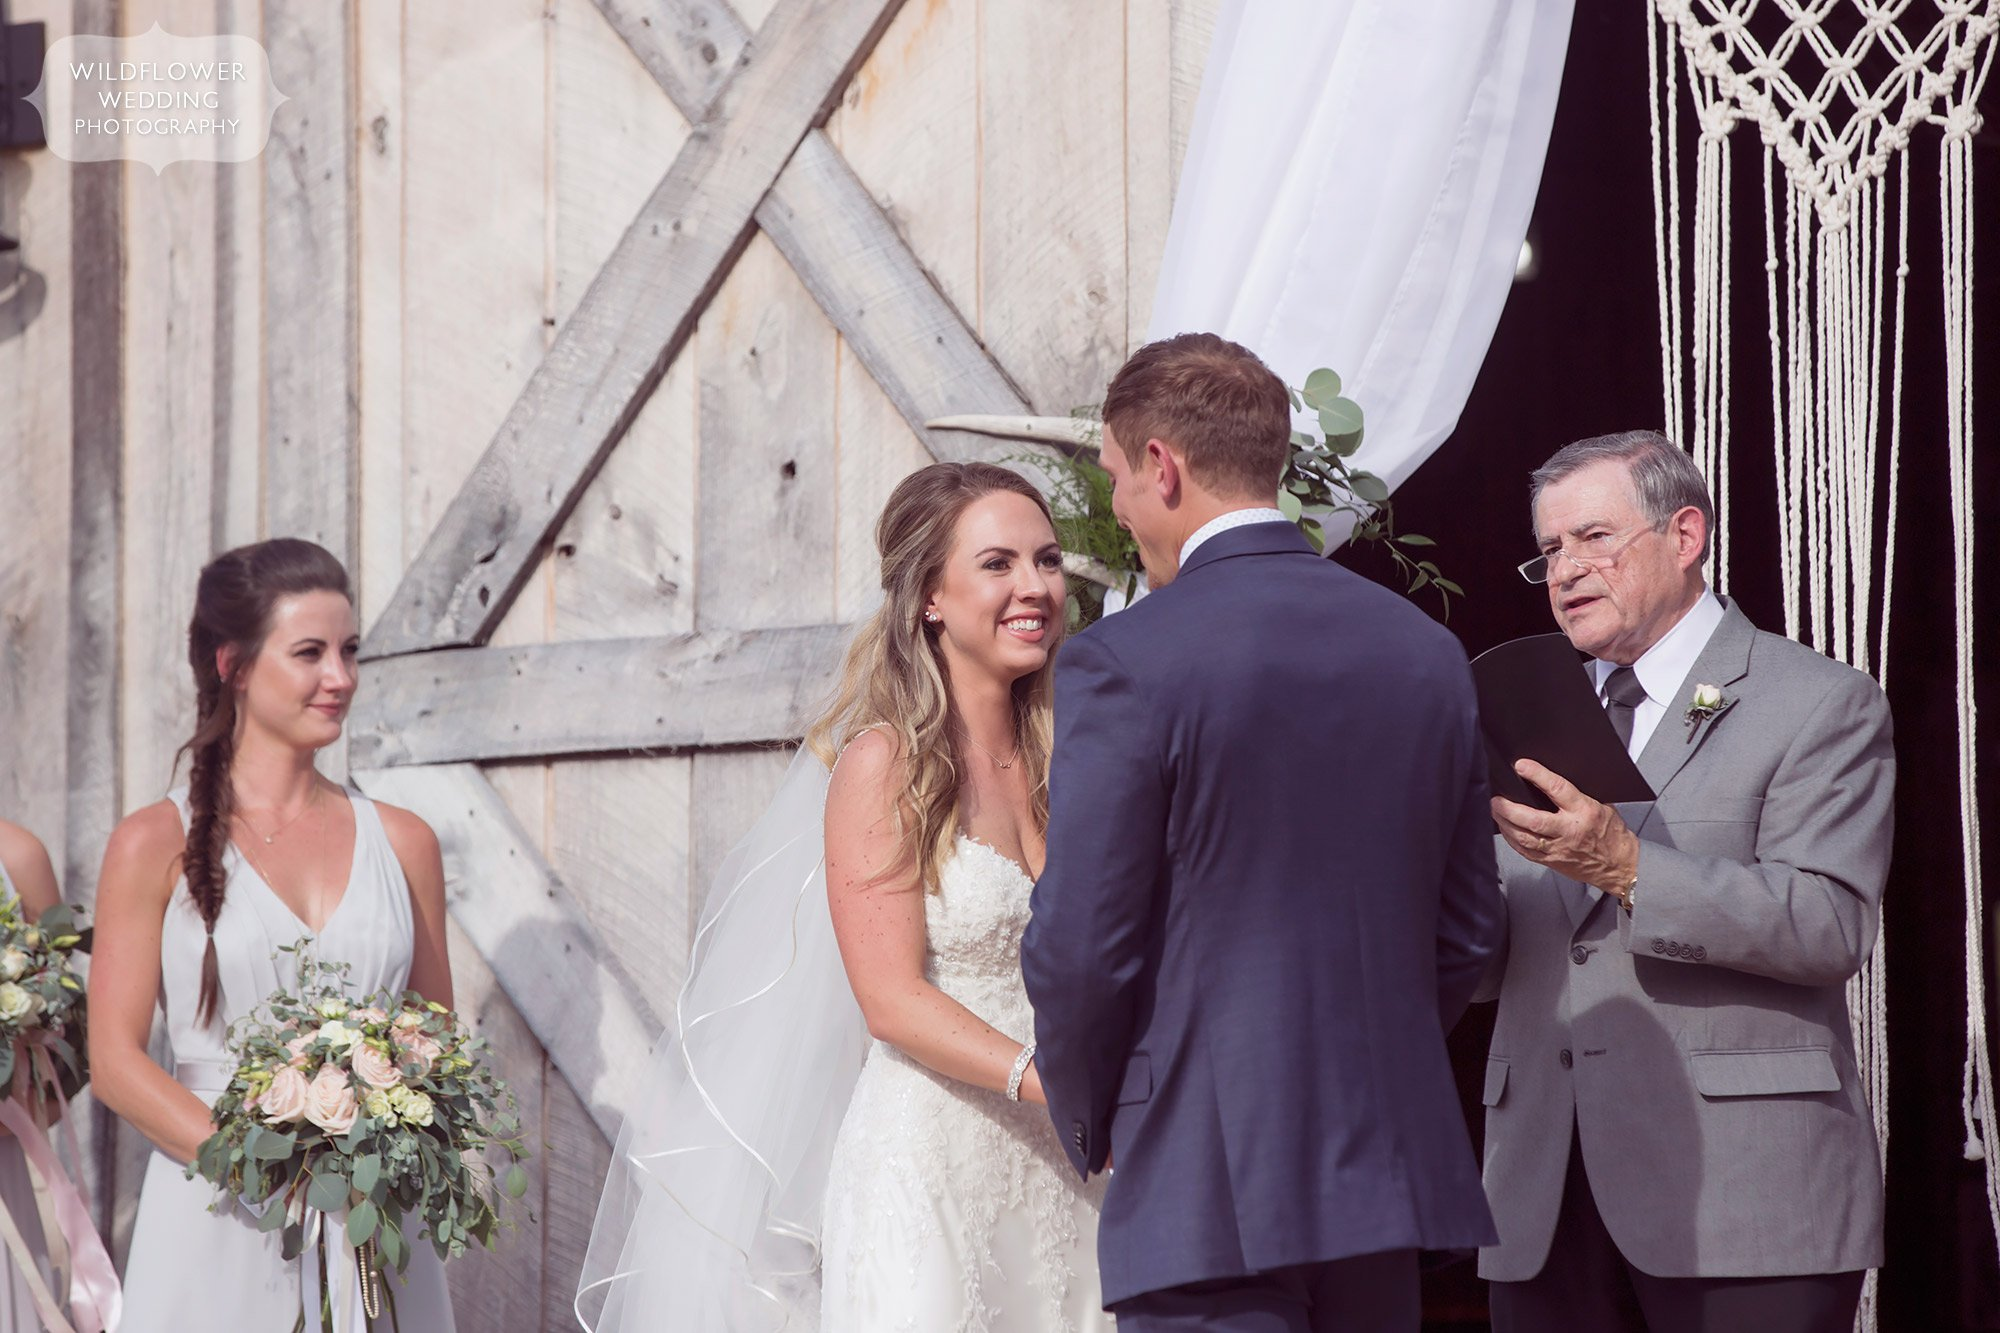 The happy bride looks at her groom during this natural wedding photo of the outdoor ceremony.